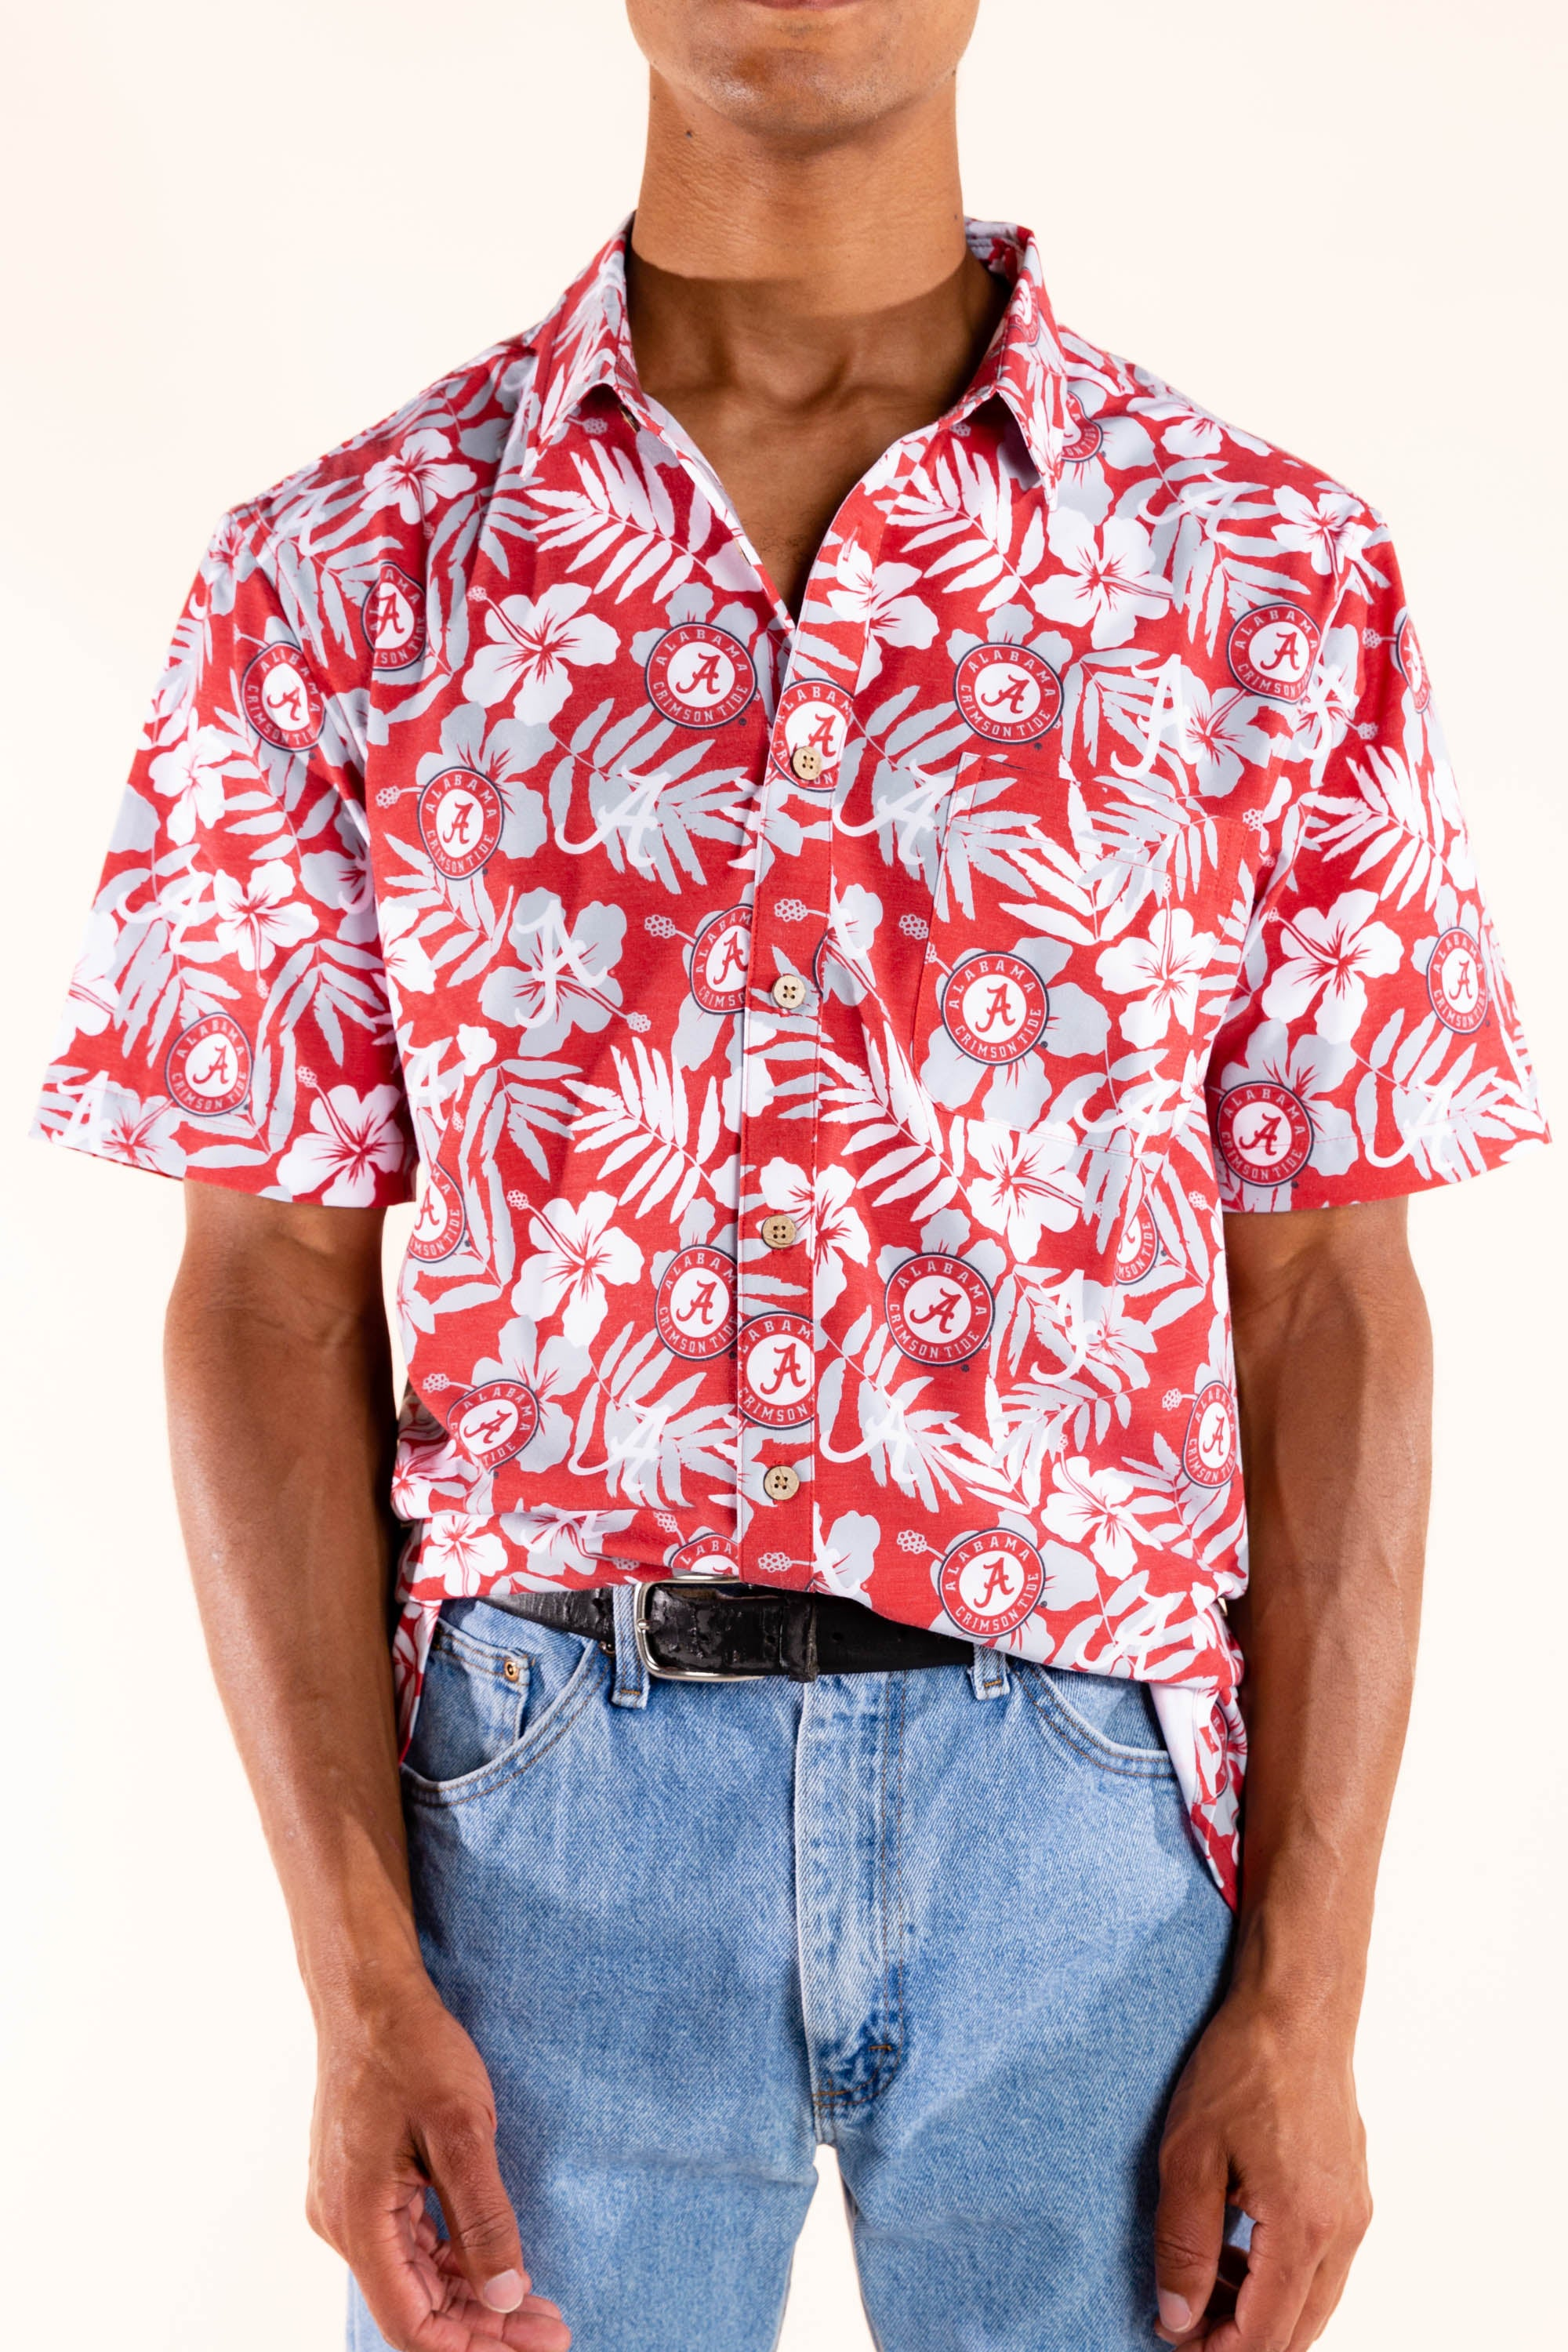 University of alabama hawaiian shirt